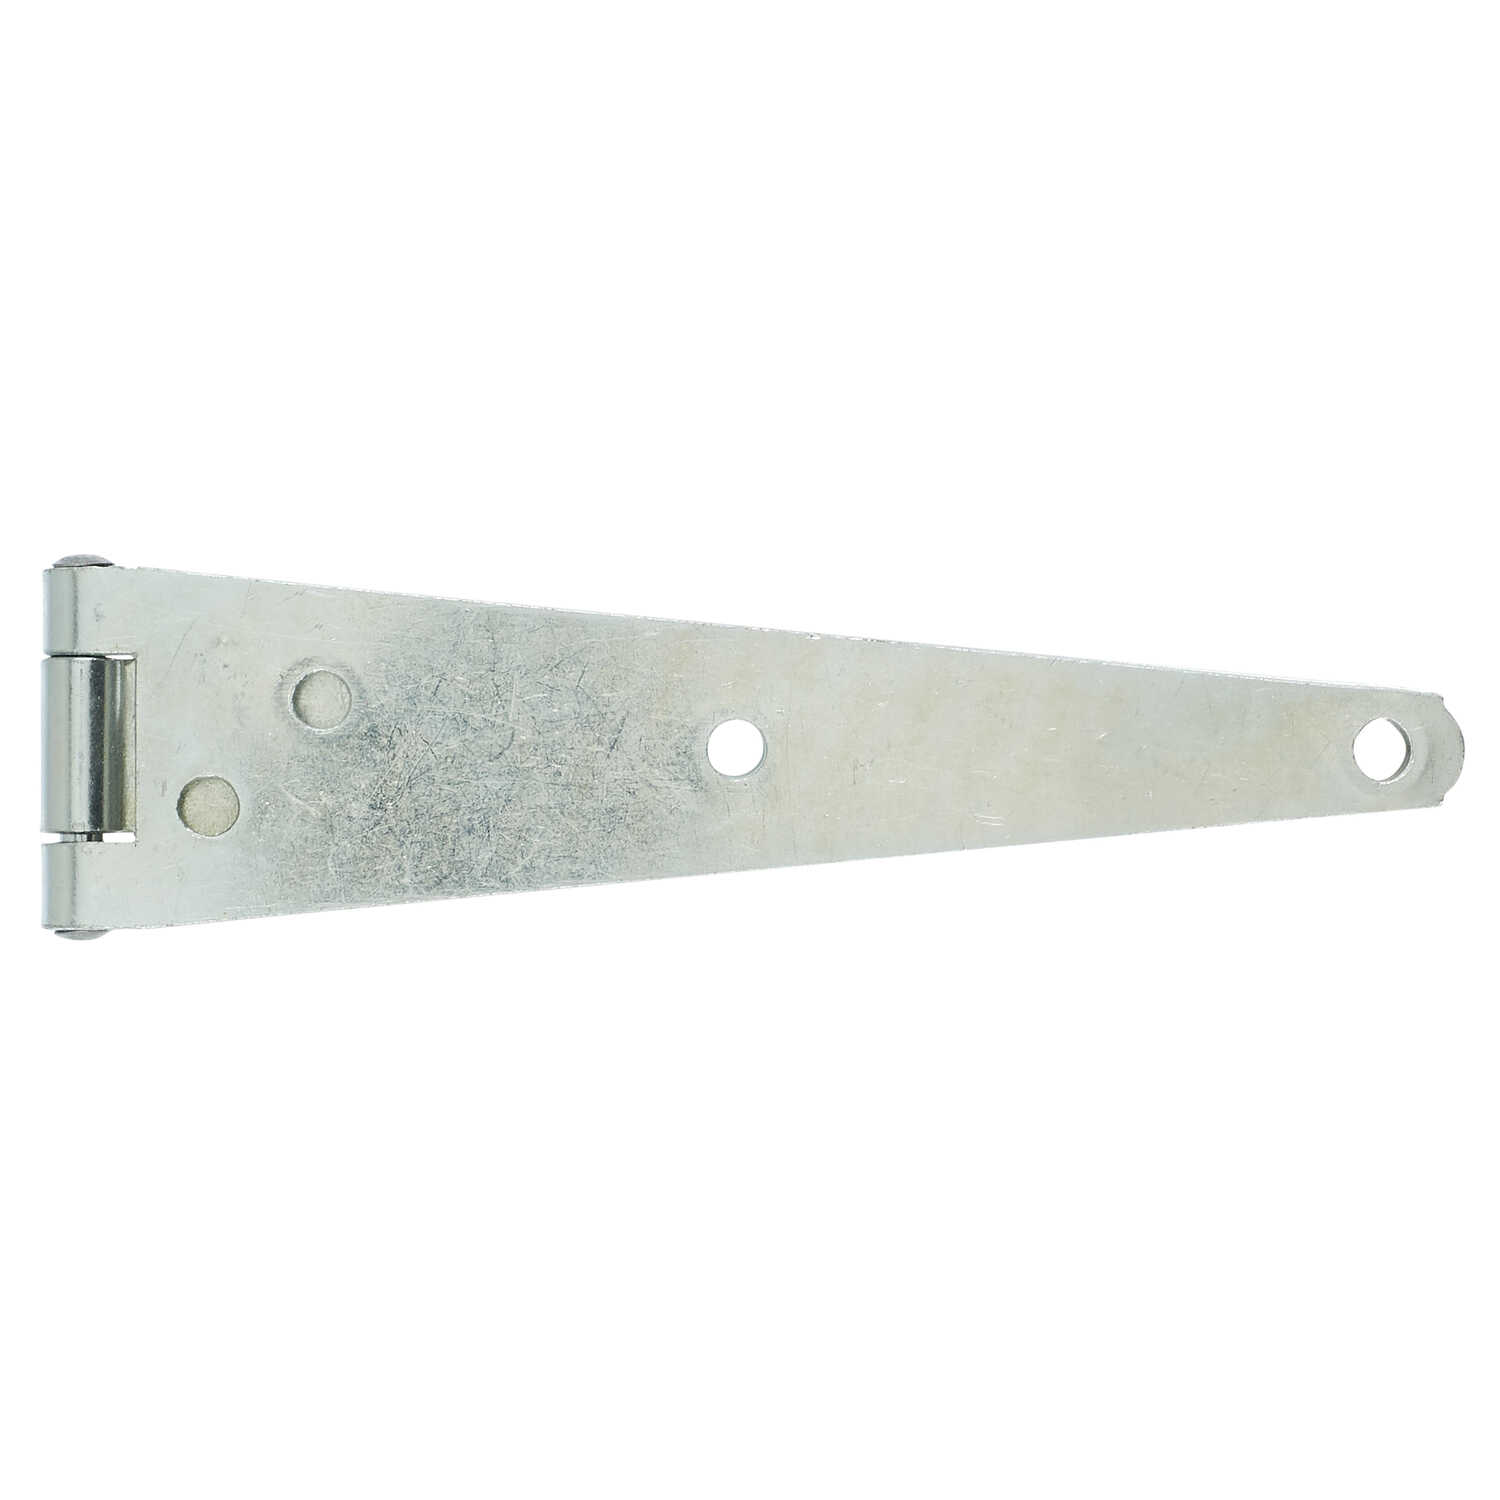 Ace  6 in. L Zinc-Plated  Light Duty Strap Hinge  1 pk